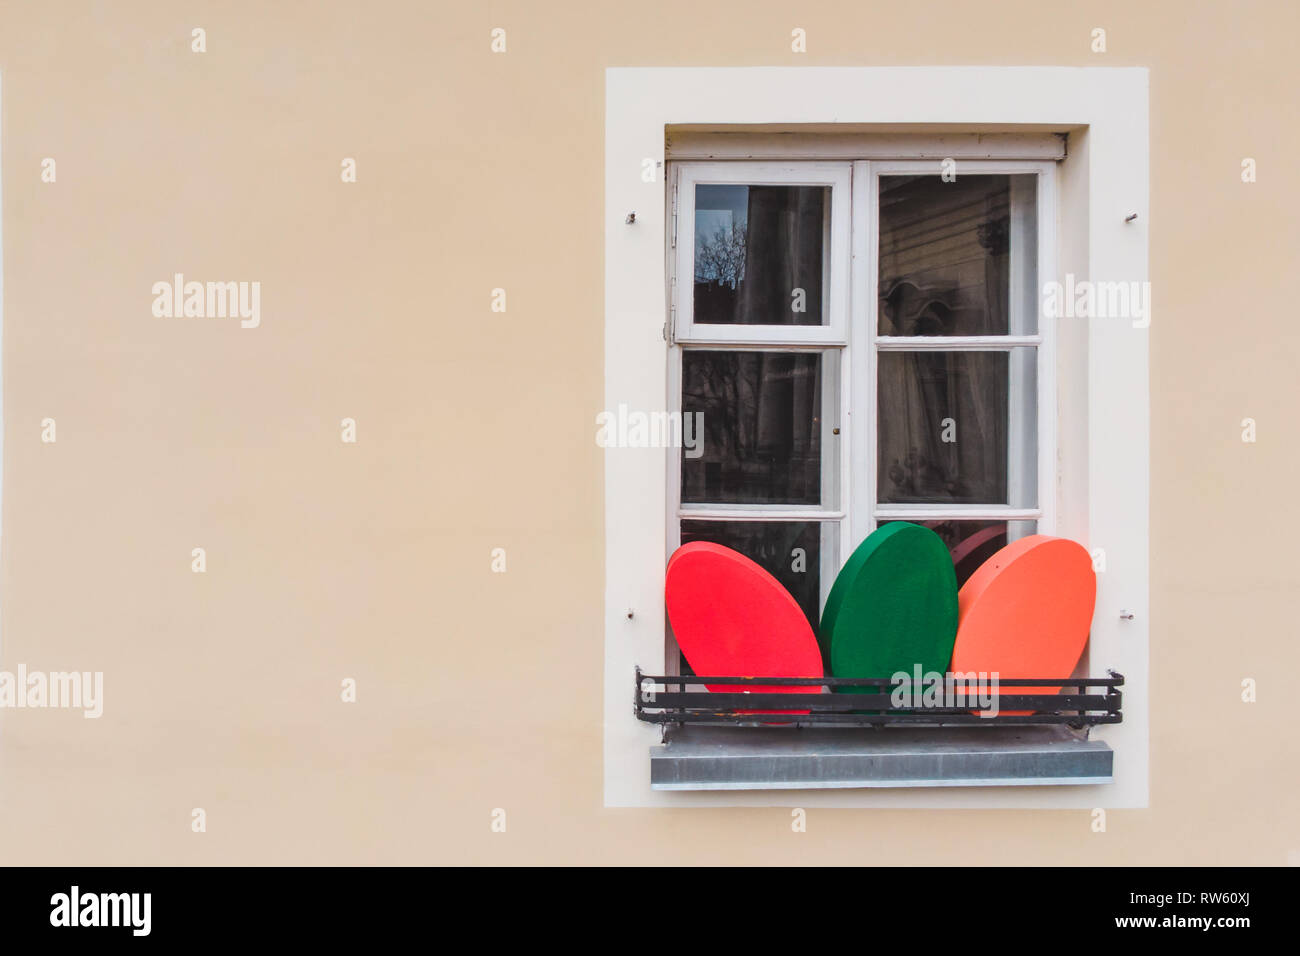 easter decoration eggs on building window. christian holidays - Stock Image